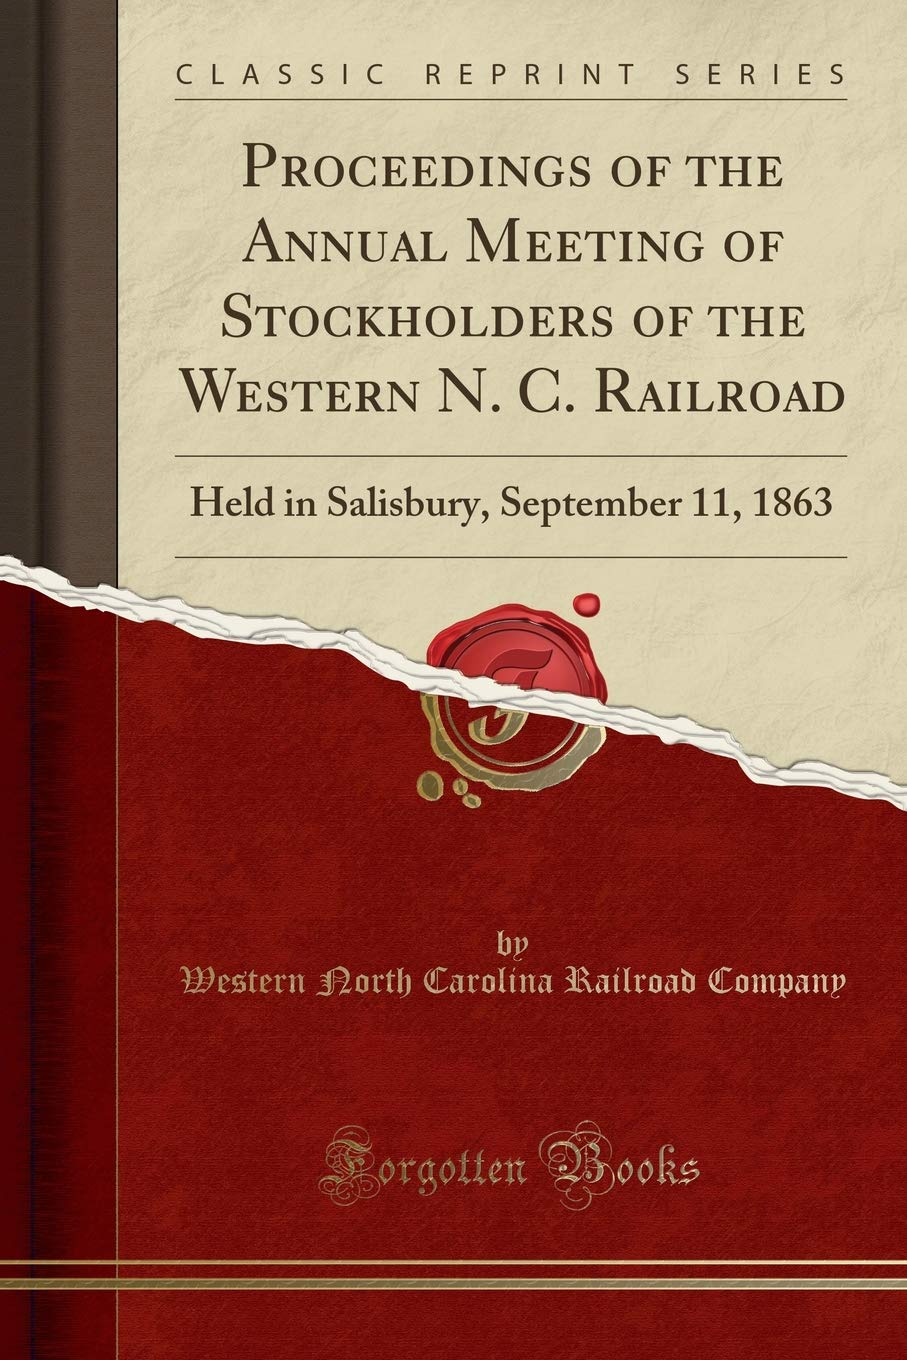 Proceedings of the Annual Meeting of Stockholders of the Western N. C. Railroad: Held in Salisbury, September 11, 1863 (Classic Reprint) pdf